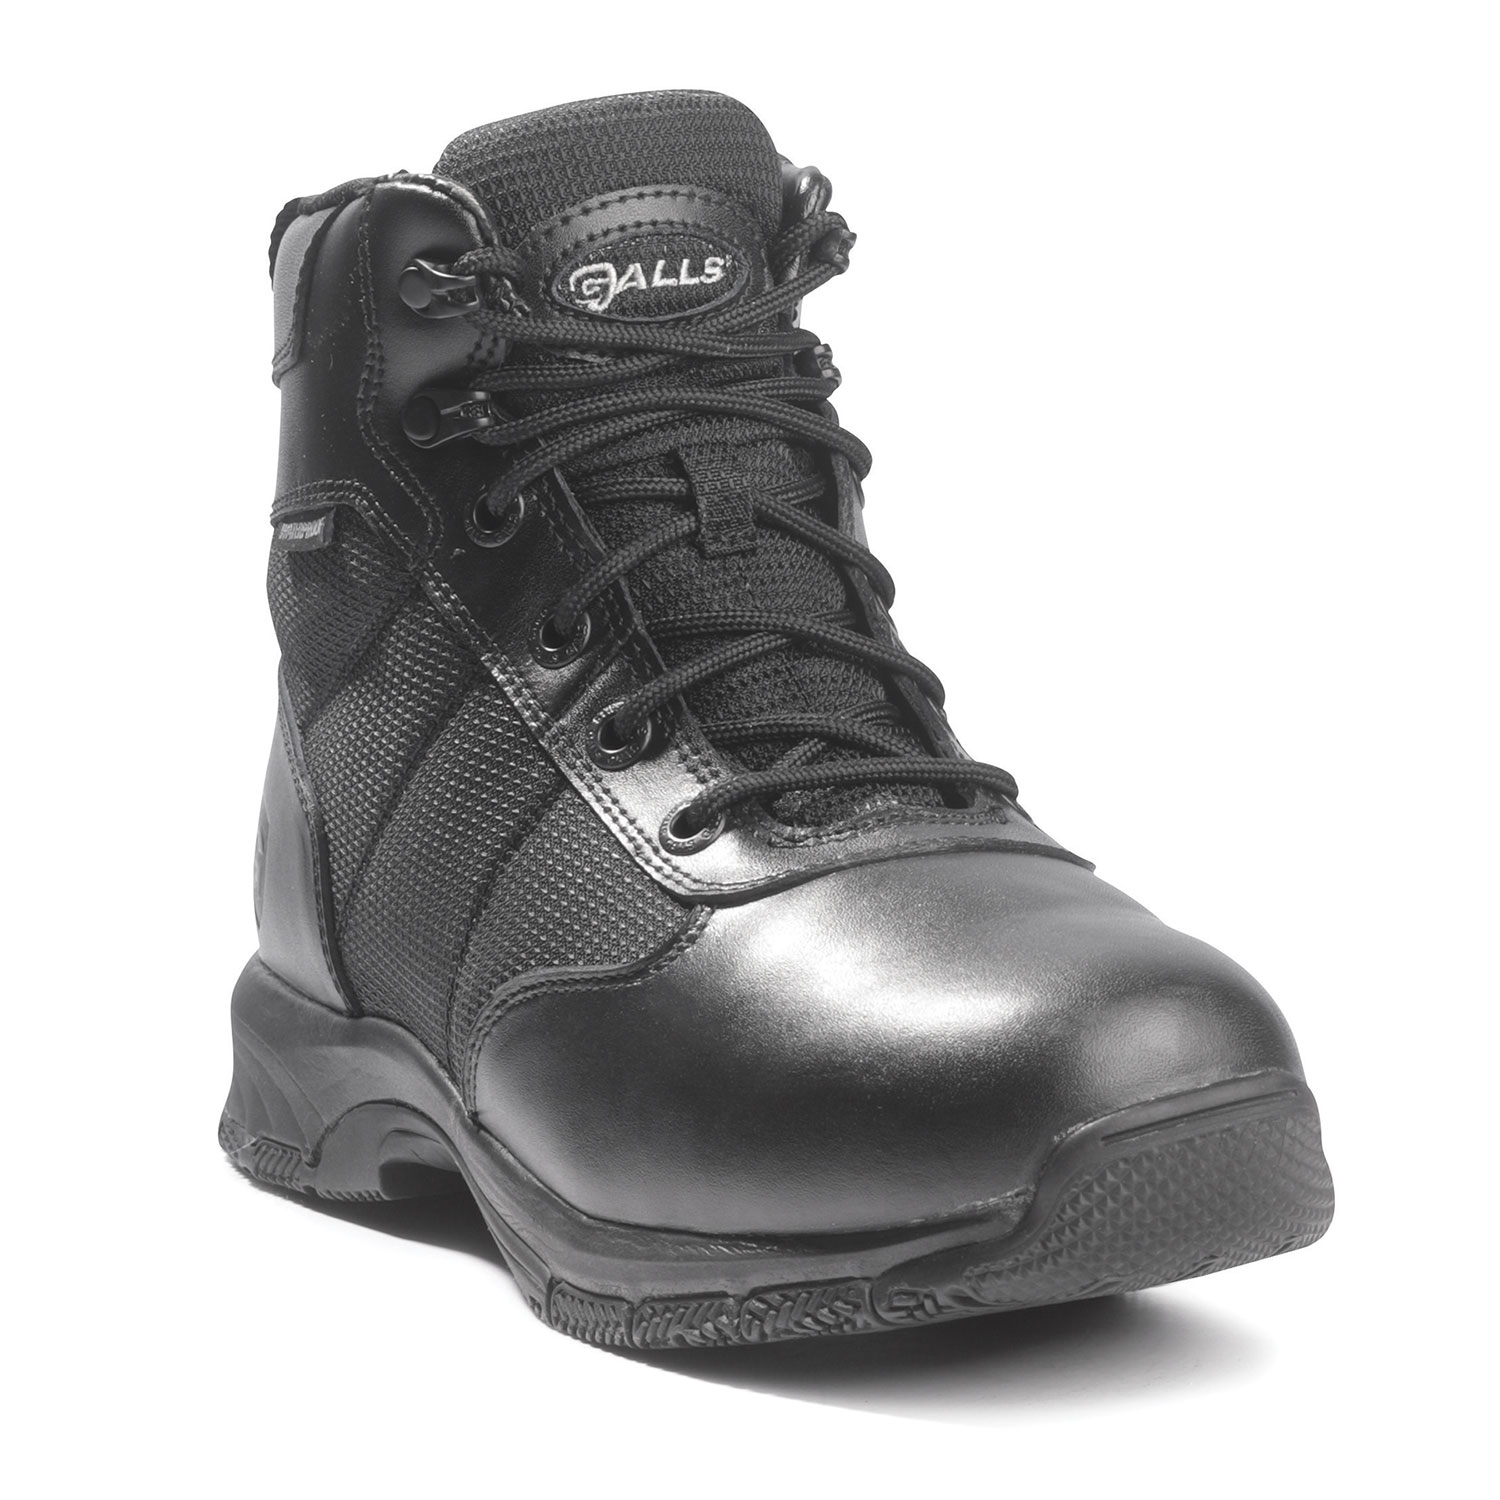 Galls G-TAC Athletic 6 inch SZ WP Boot with Polishable Toe